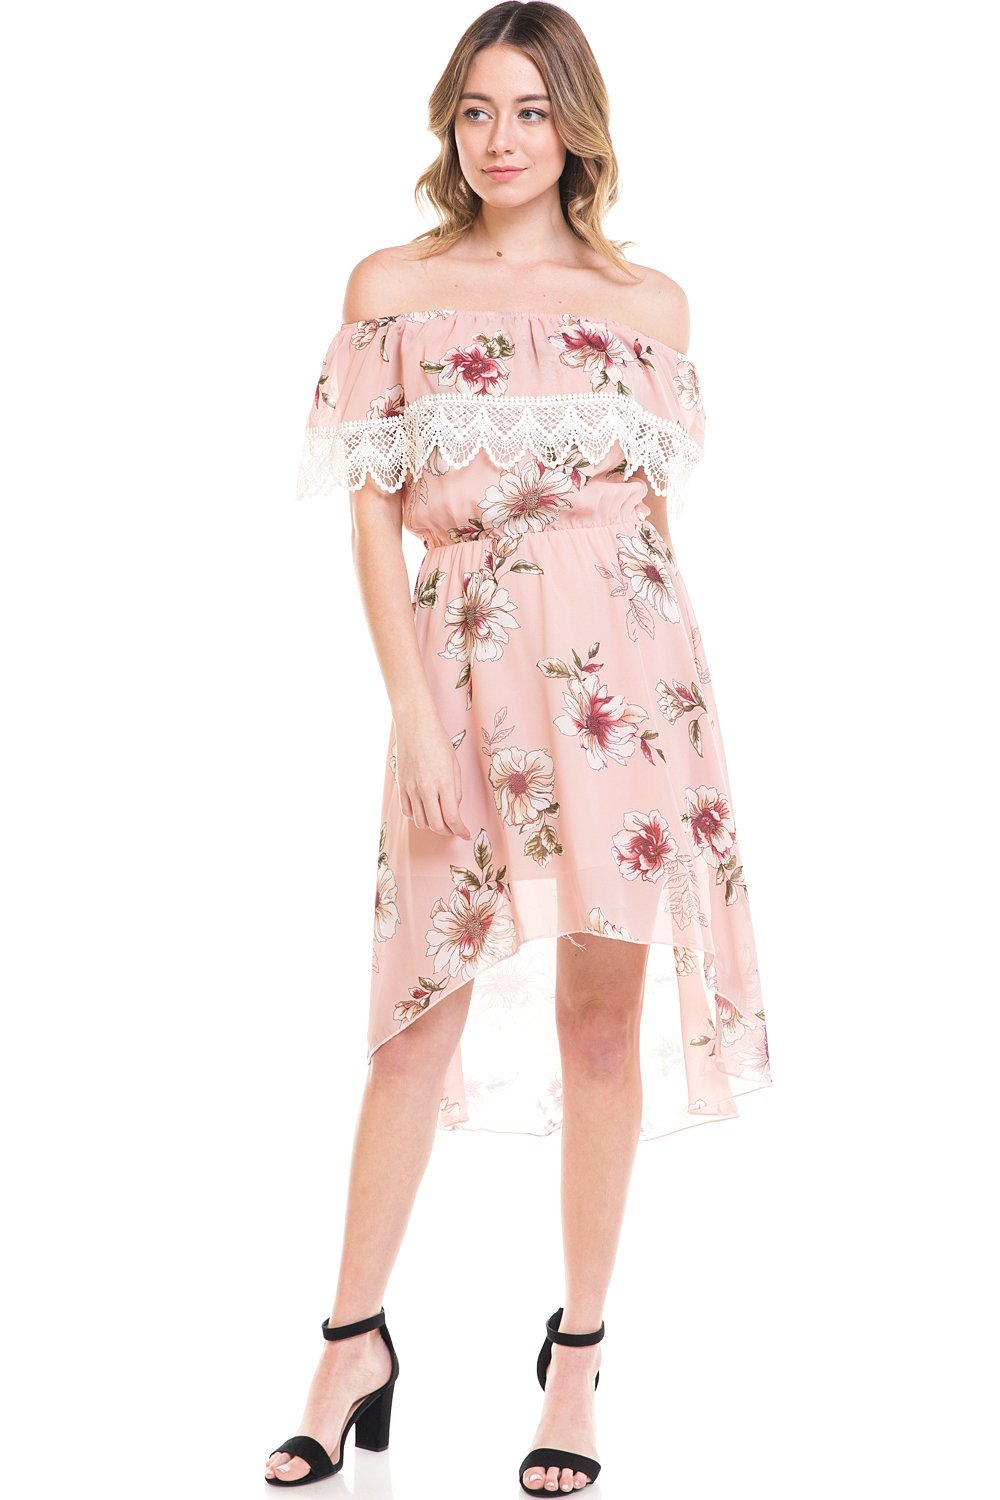 Floral Off Shoulder Hi-Low Dress - The Jeana